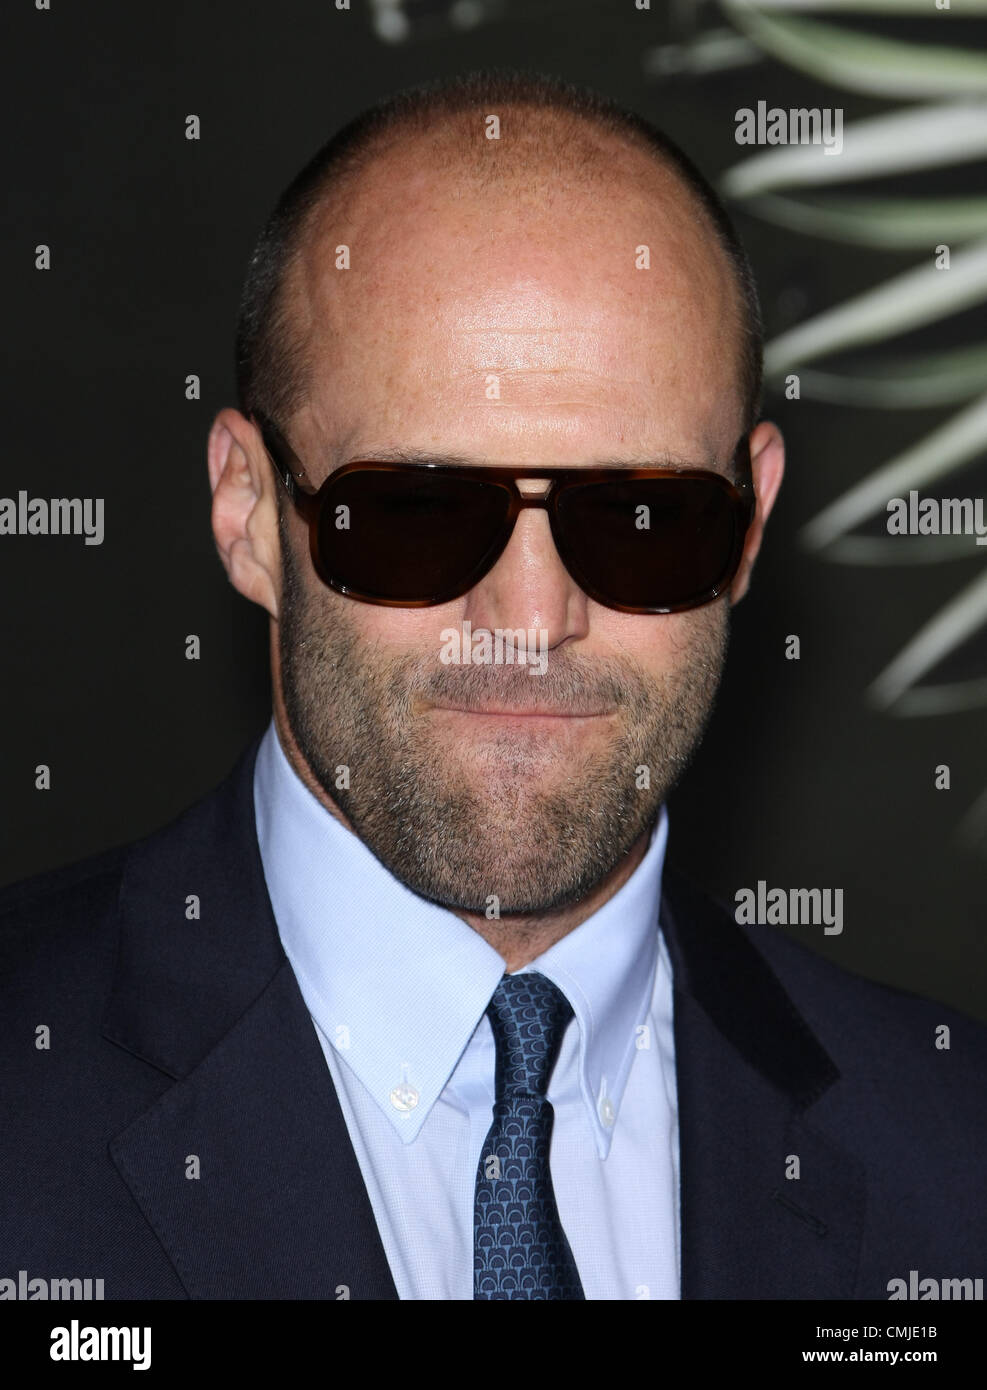 6b34a08284c JASON STATHAM EXPENDABLES 2. WORLD PREMIERE HOLLYWOOD LOS ANGELES  CALIFORNIA USA 15 August 2012